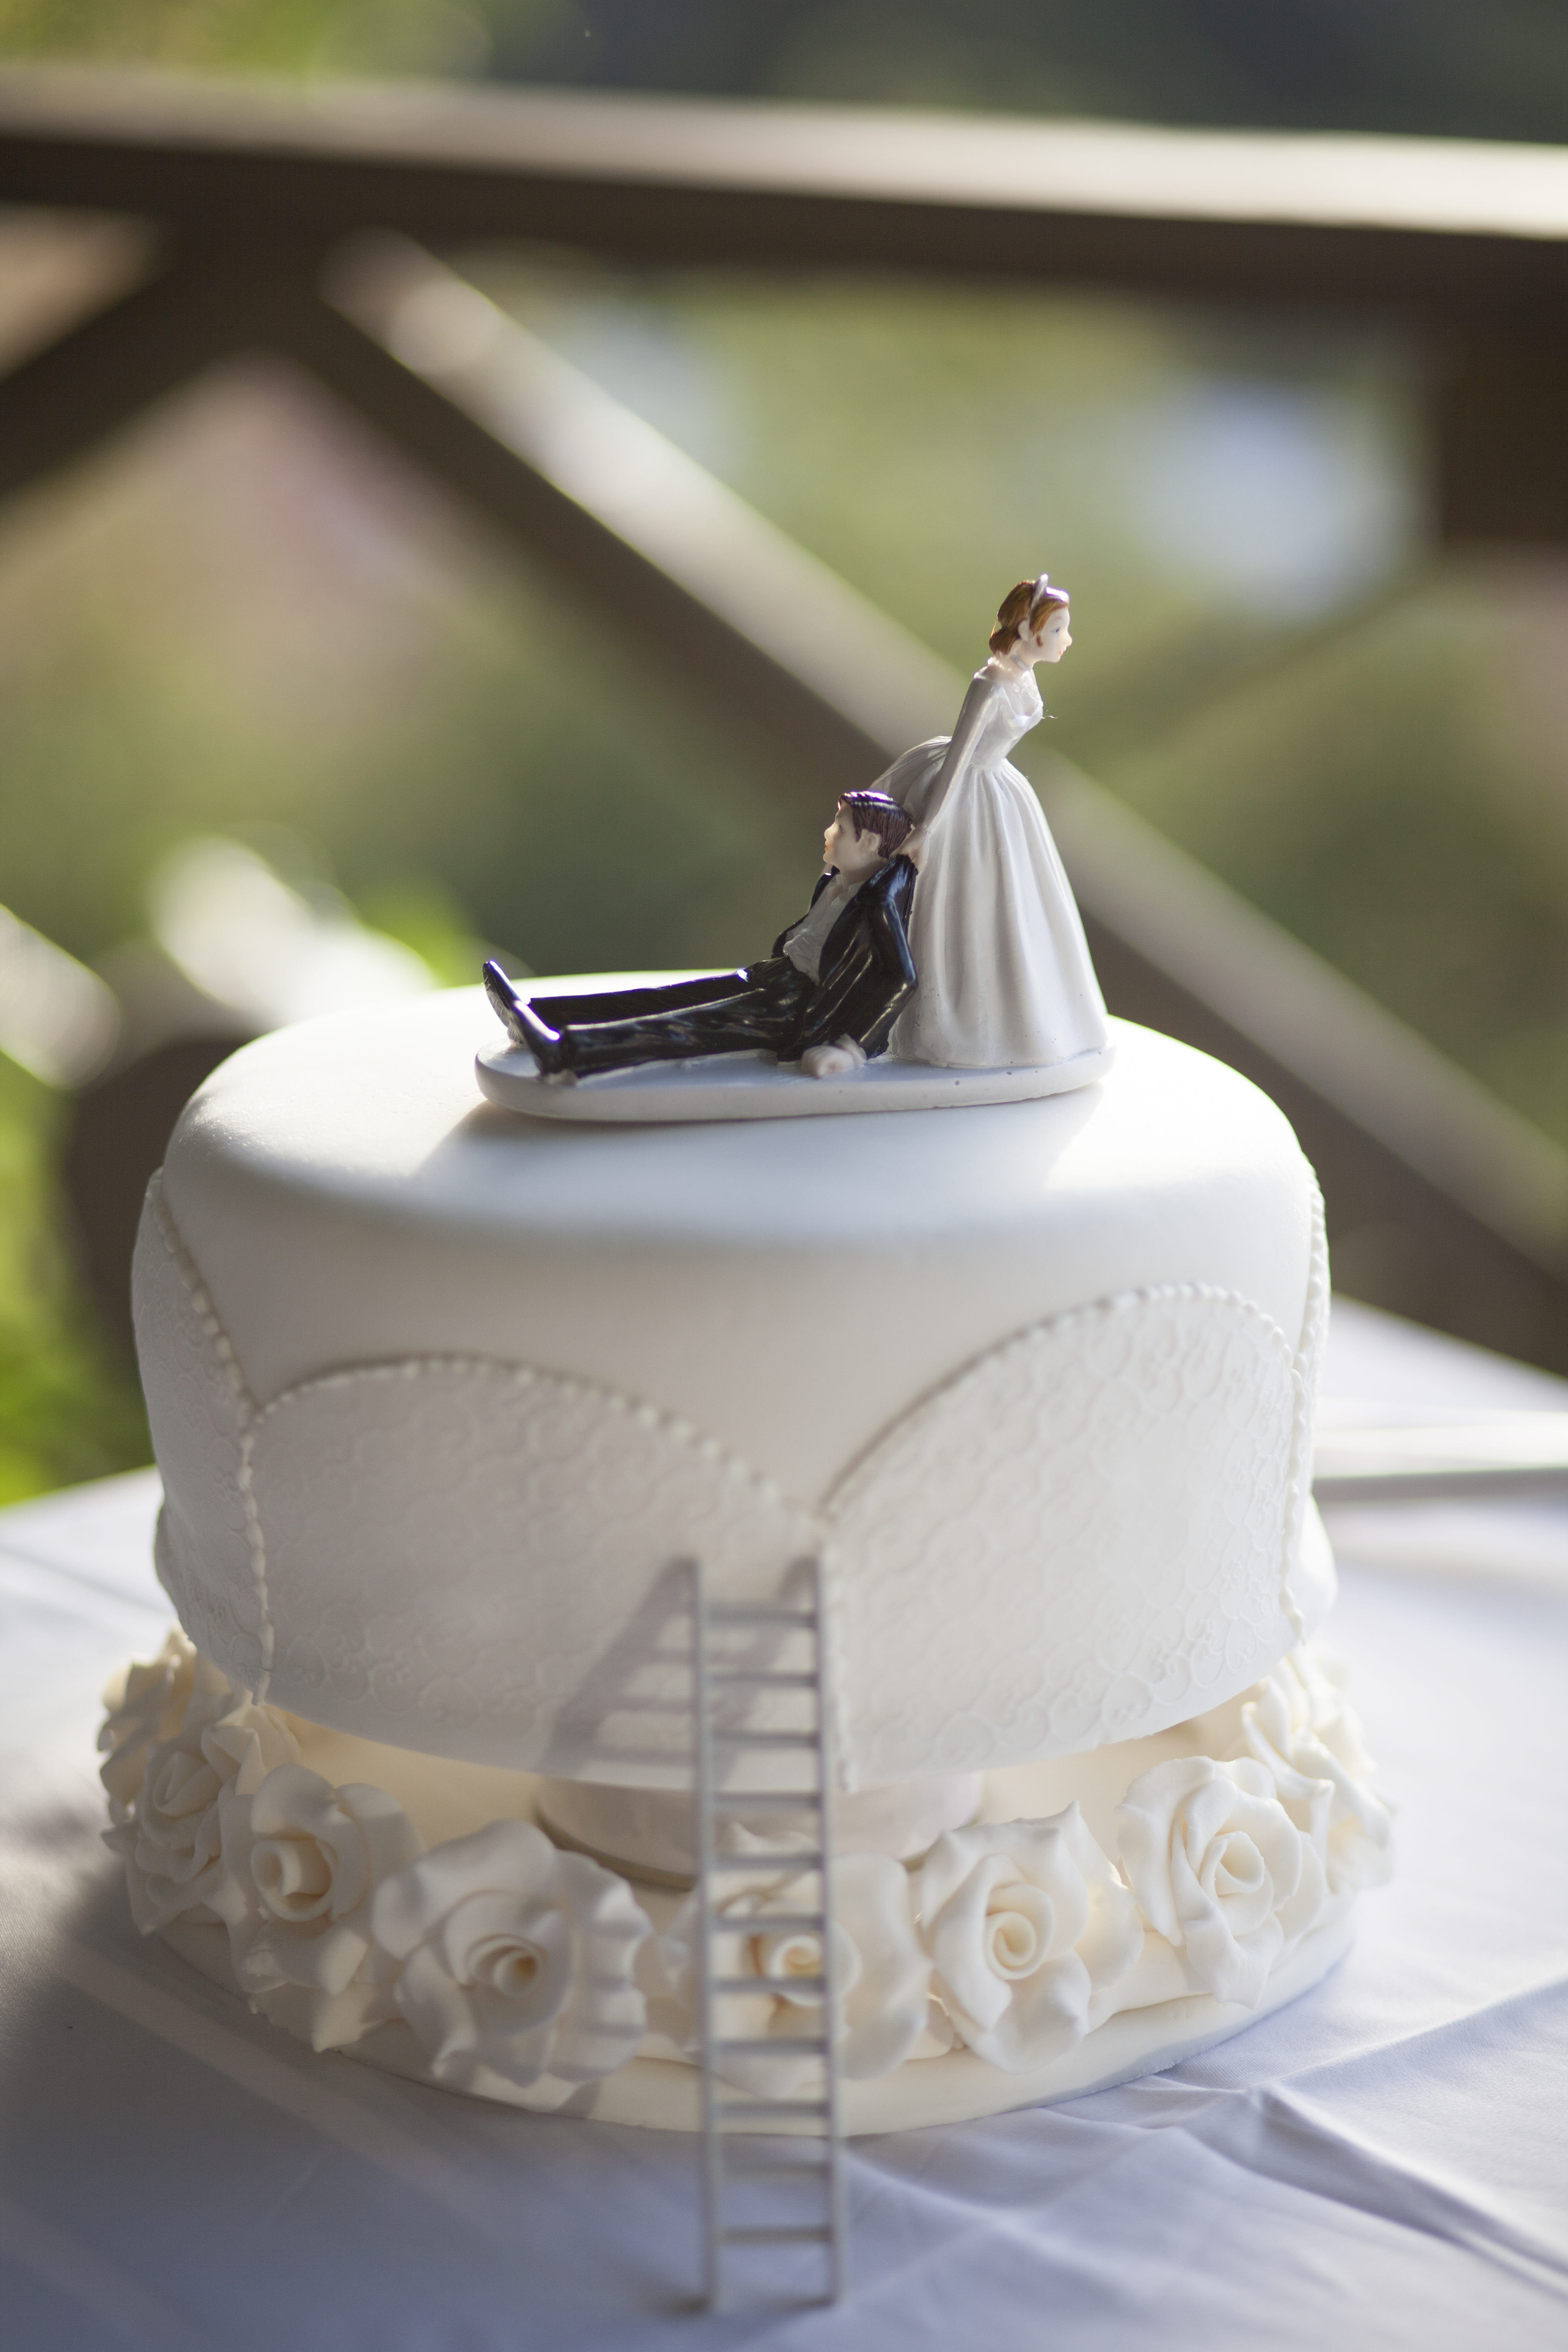 Wedding cakes in Northern Cyprus (15)